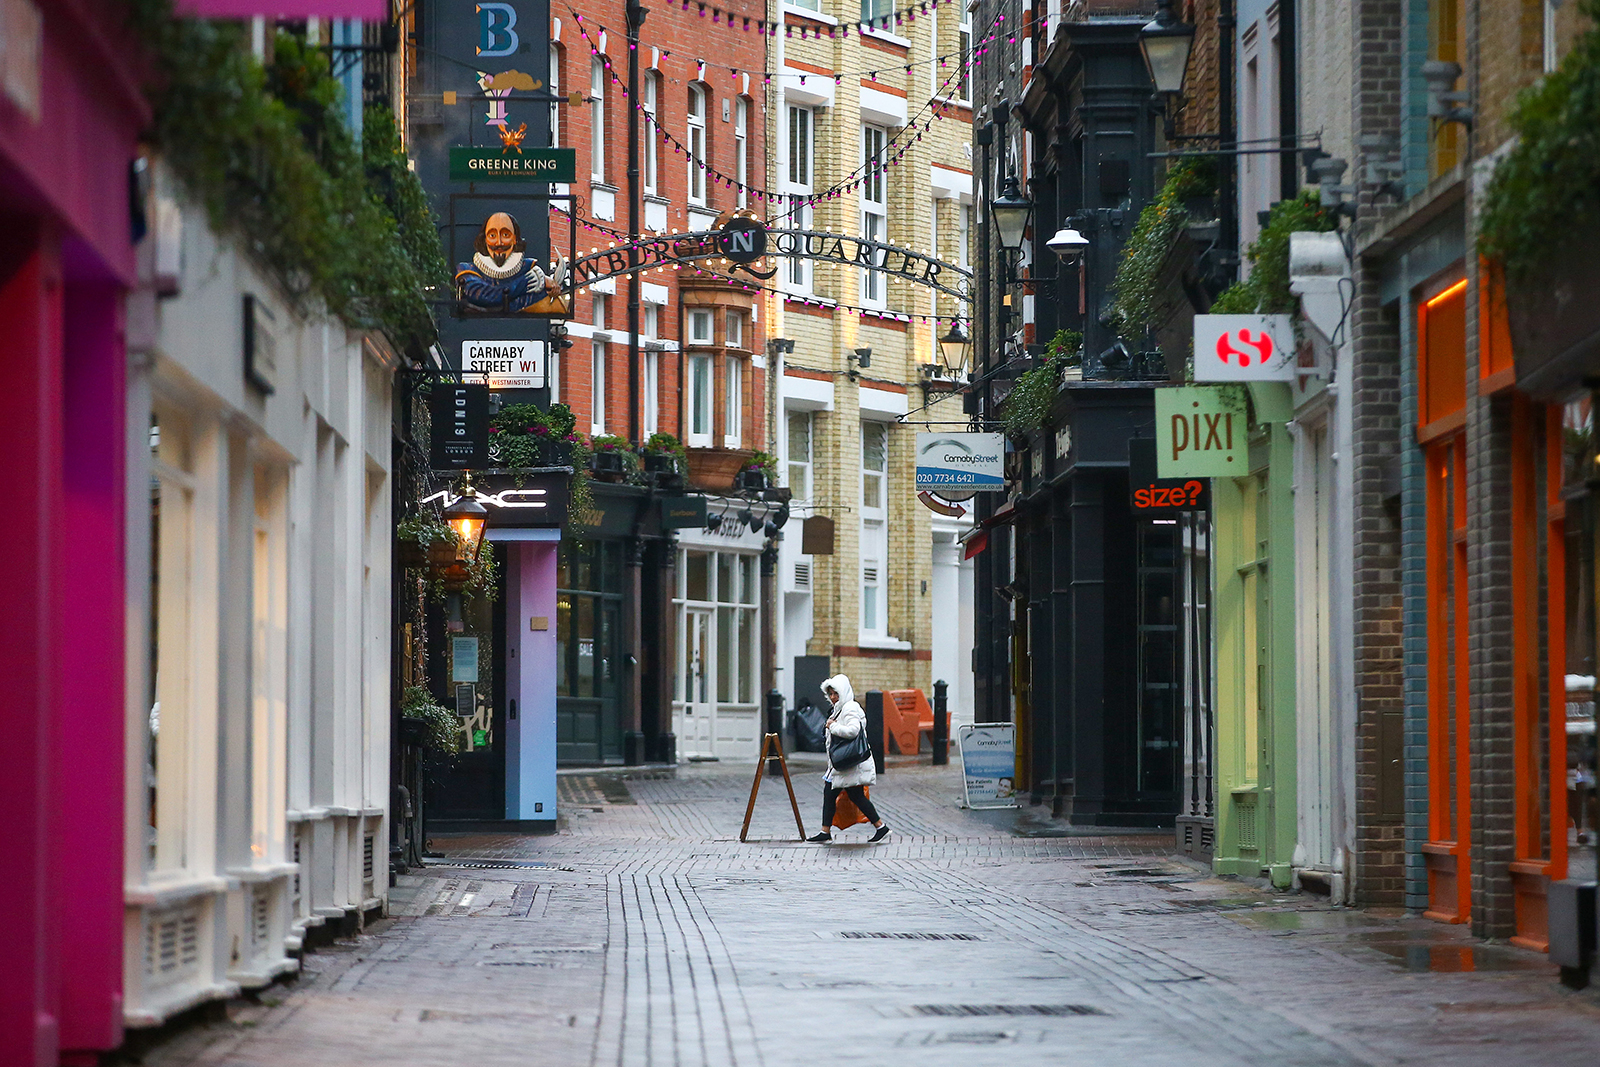 A pedestrian passes closed shops on Carnaby Street in London on Tuesday, January 5.